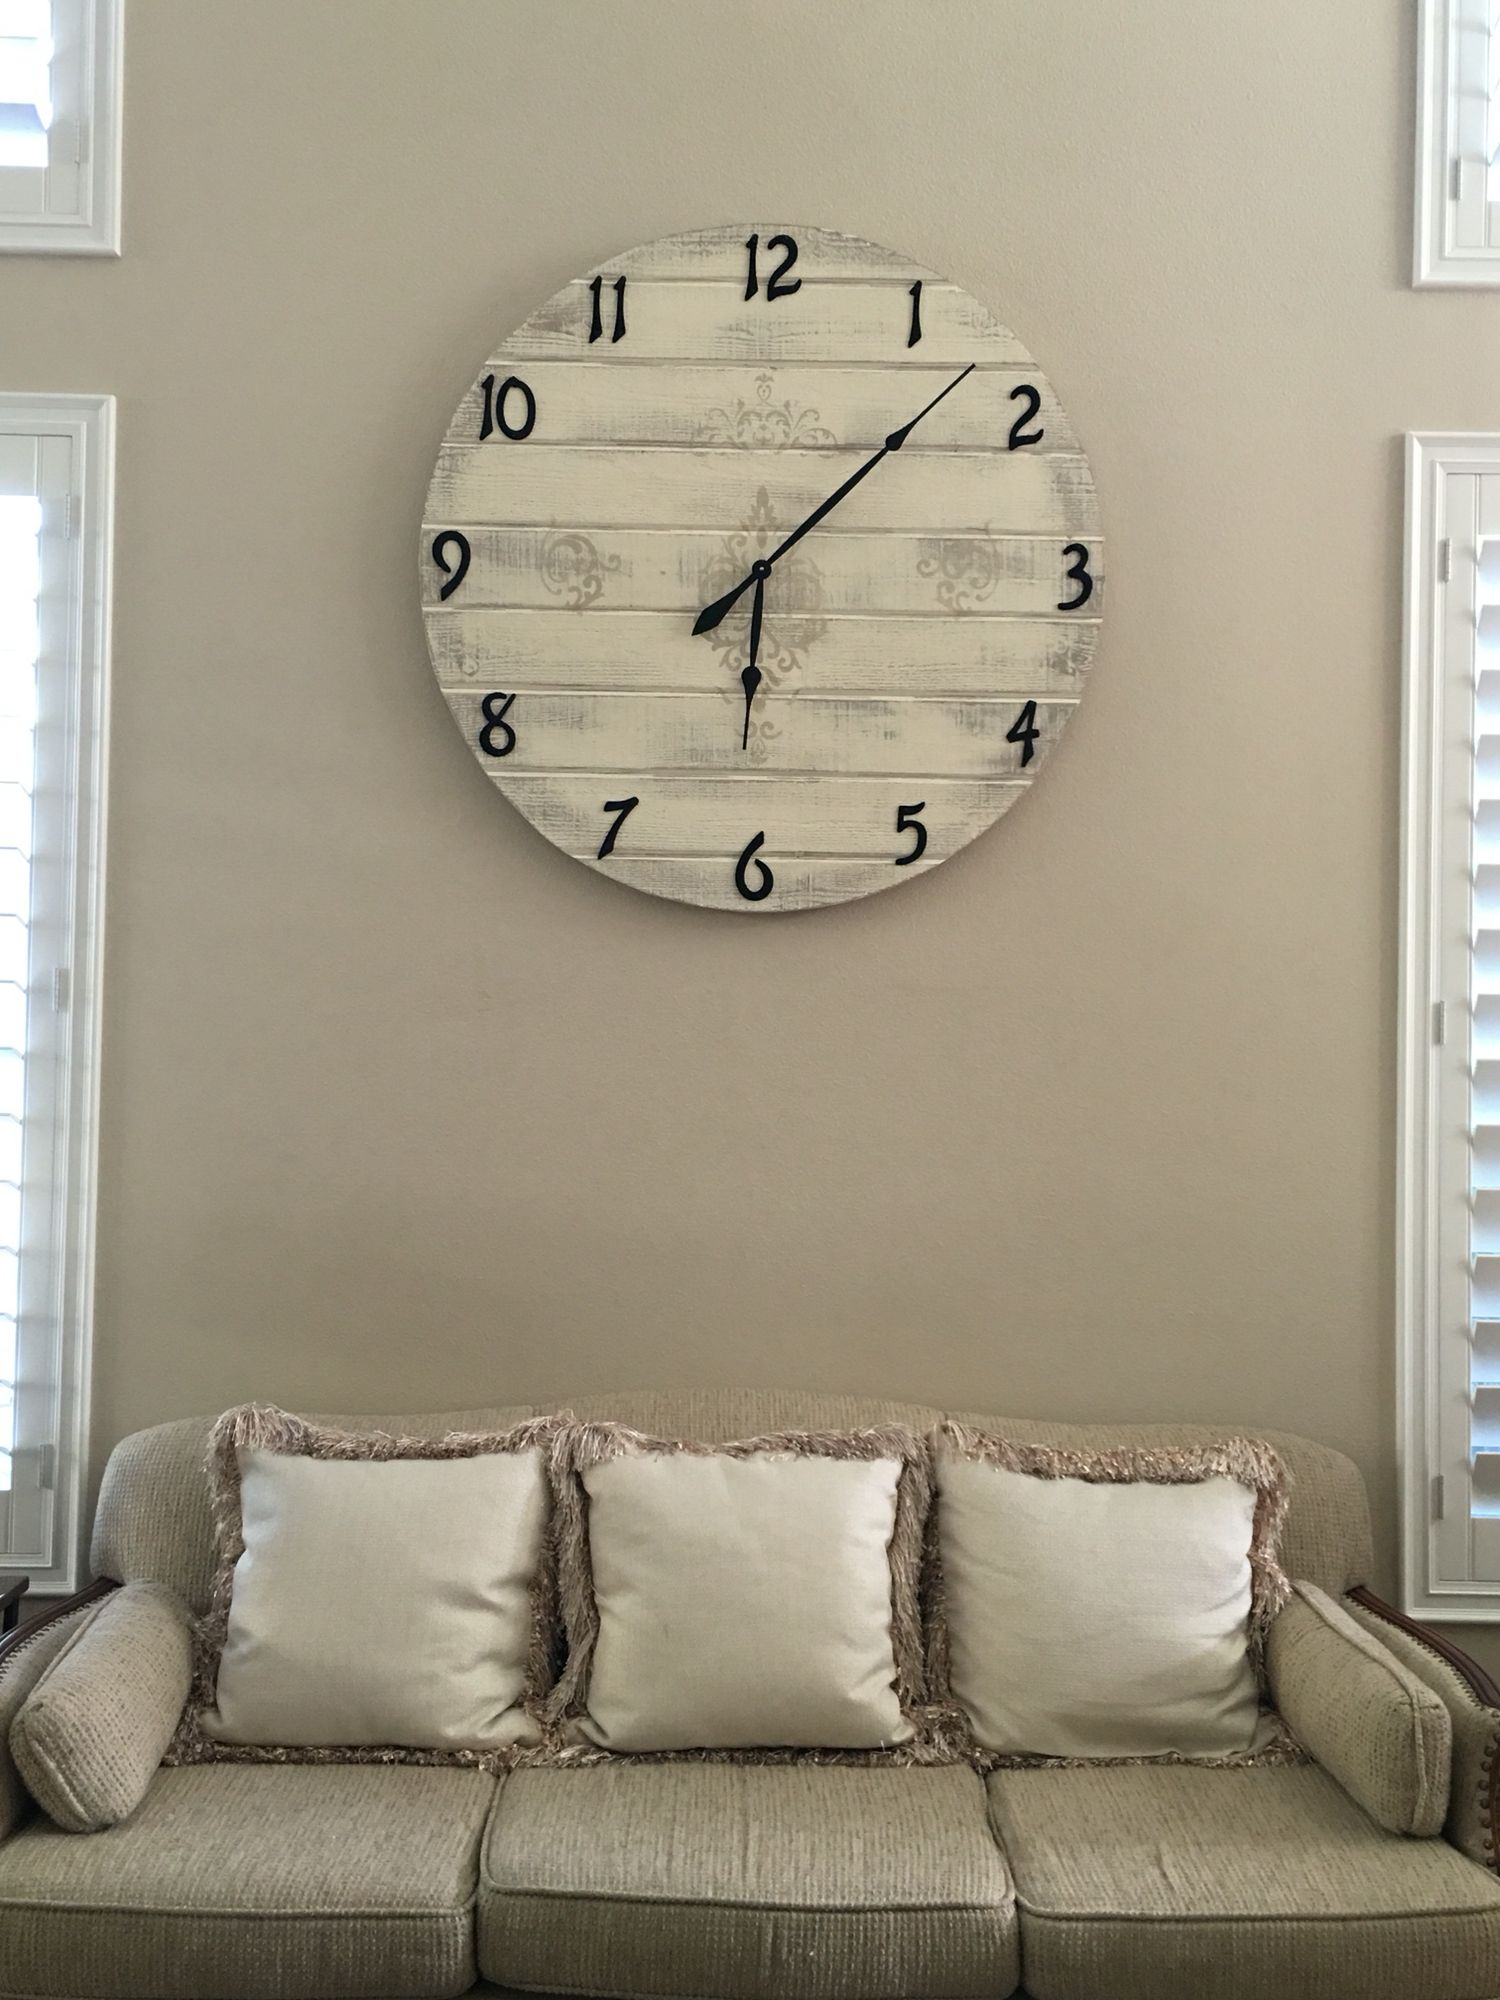 DIY HUGE Wall Clock 38 inches Made with shiplap house numbers